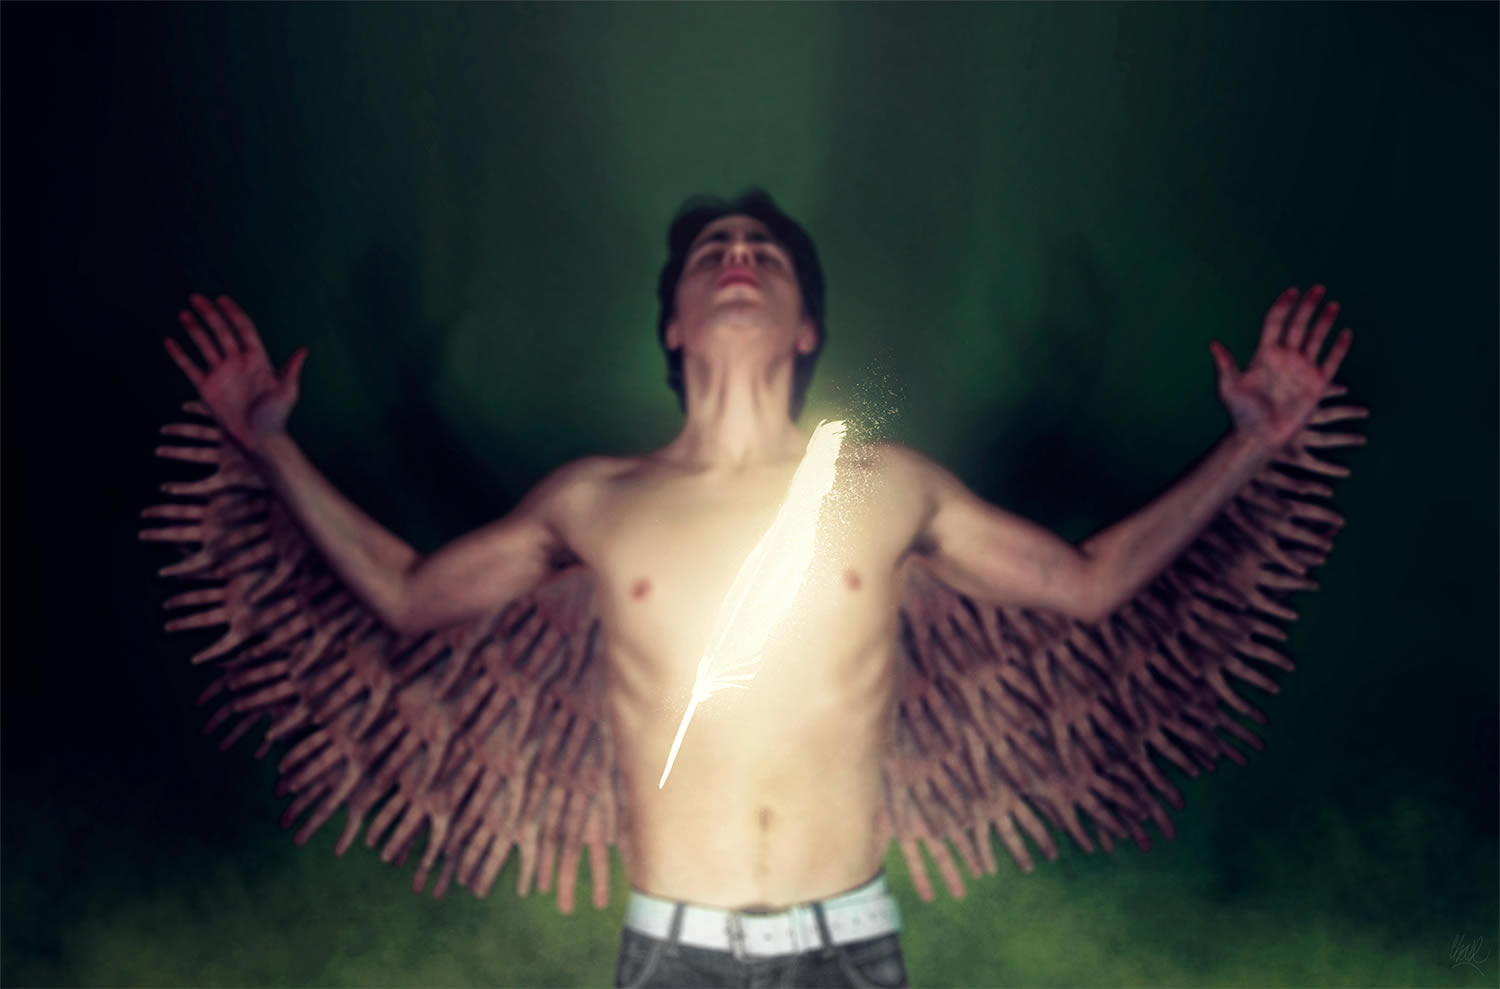 man with wings, wings made of hands. By ruben chase